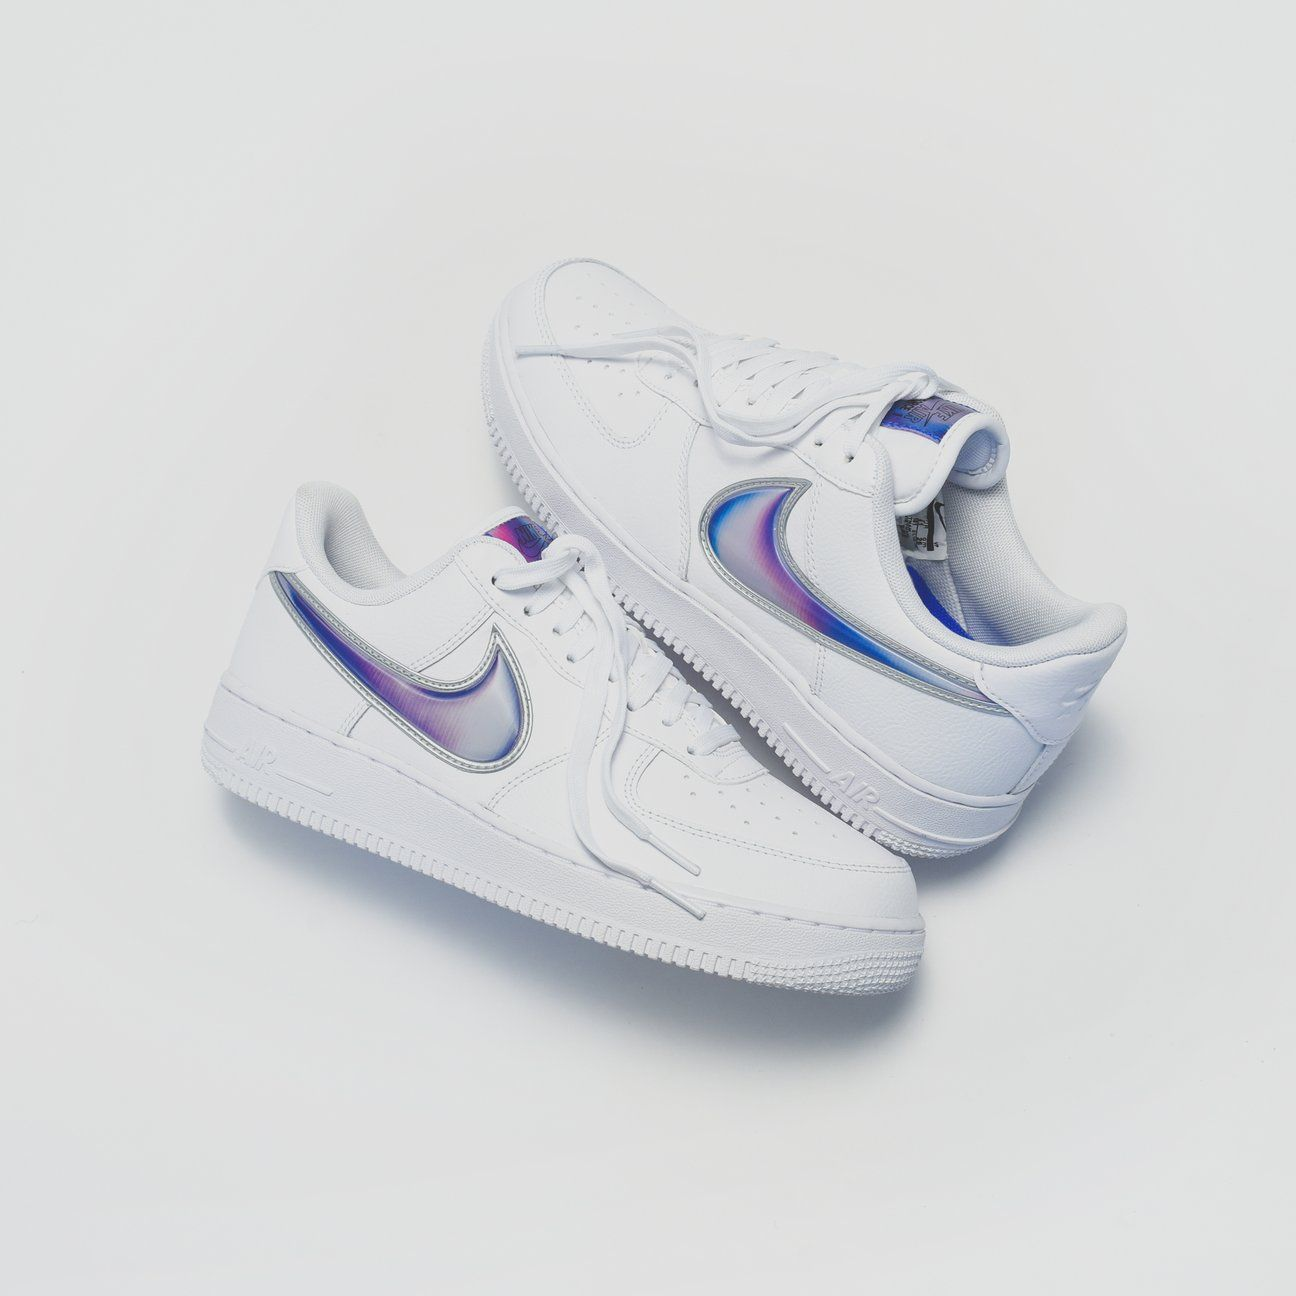 Nike Air Force 1 '07 LV8 3 - White / Racer Blue - 6 in 2019 ...